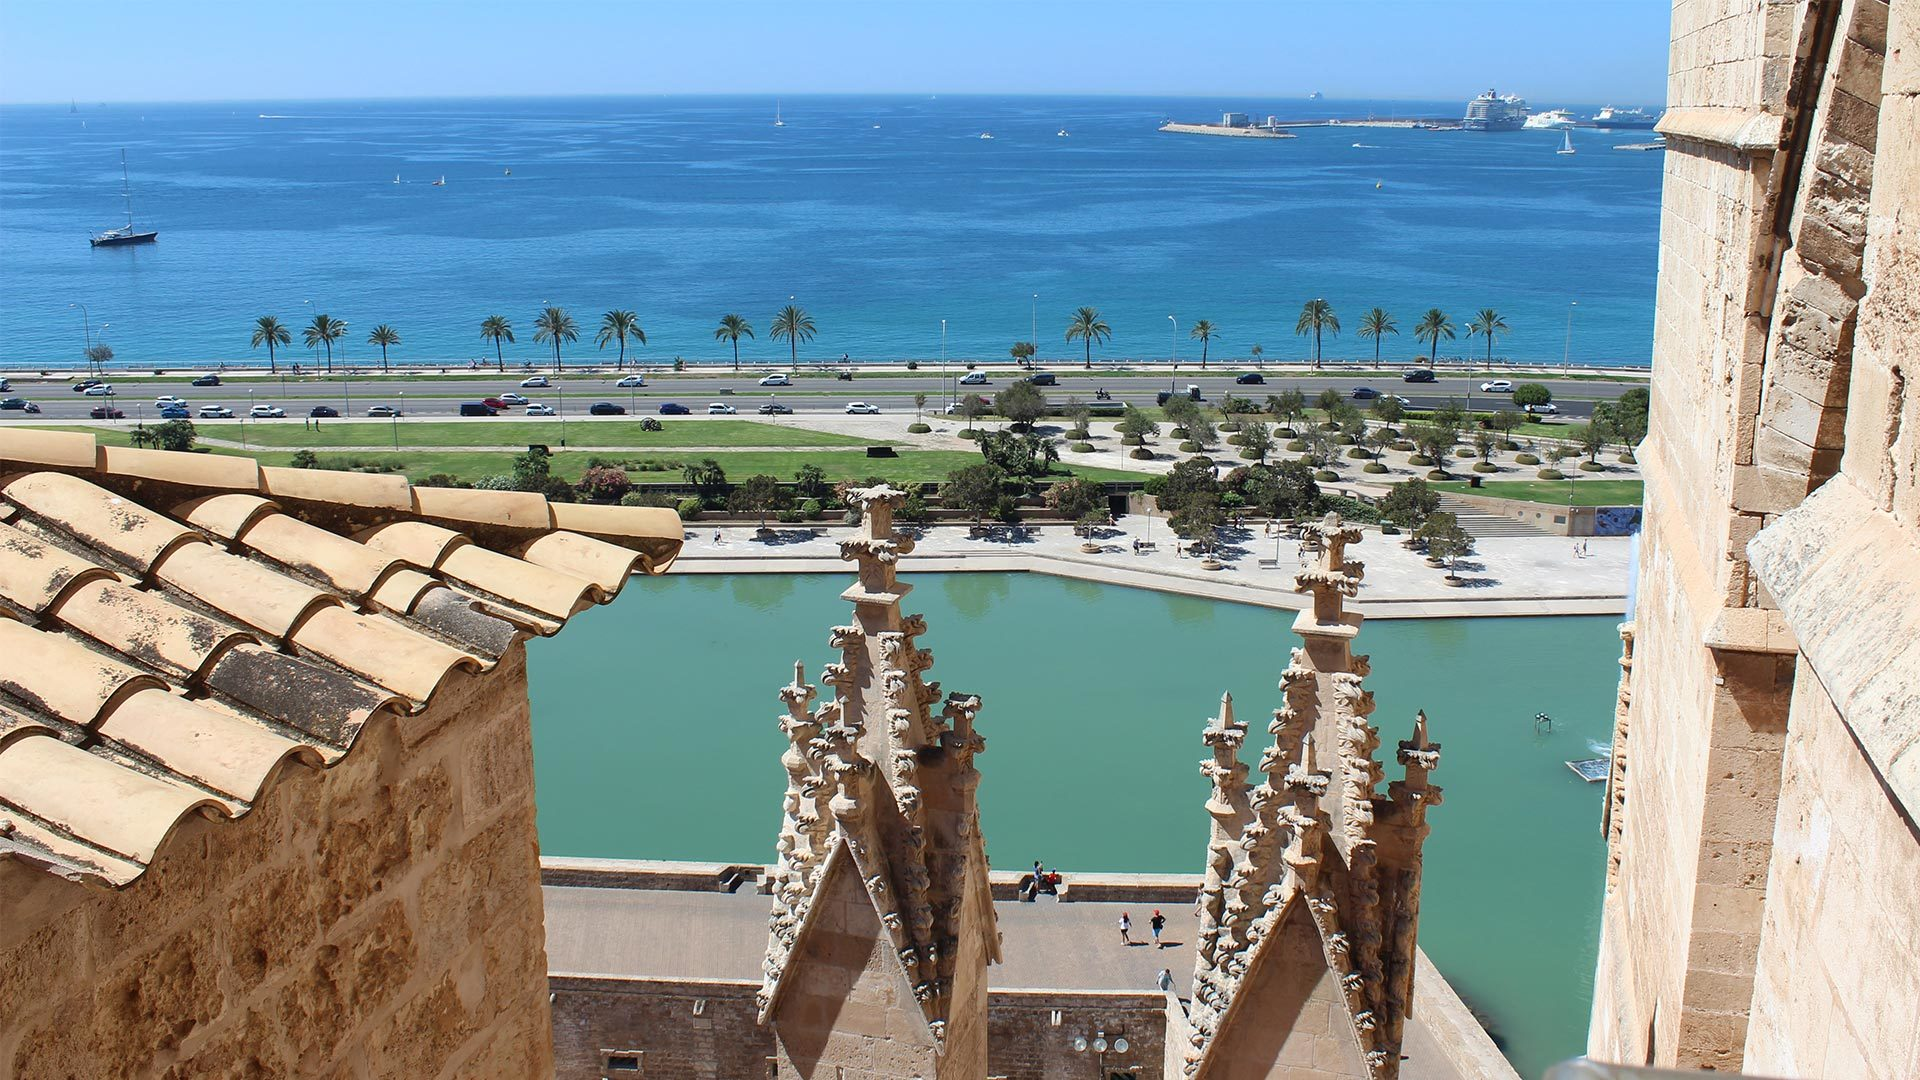 Palma Cathedral Rooftop Adele Chretien Yello There Photography 8